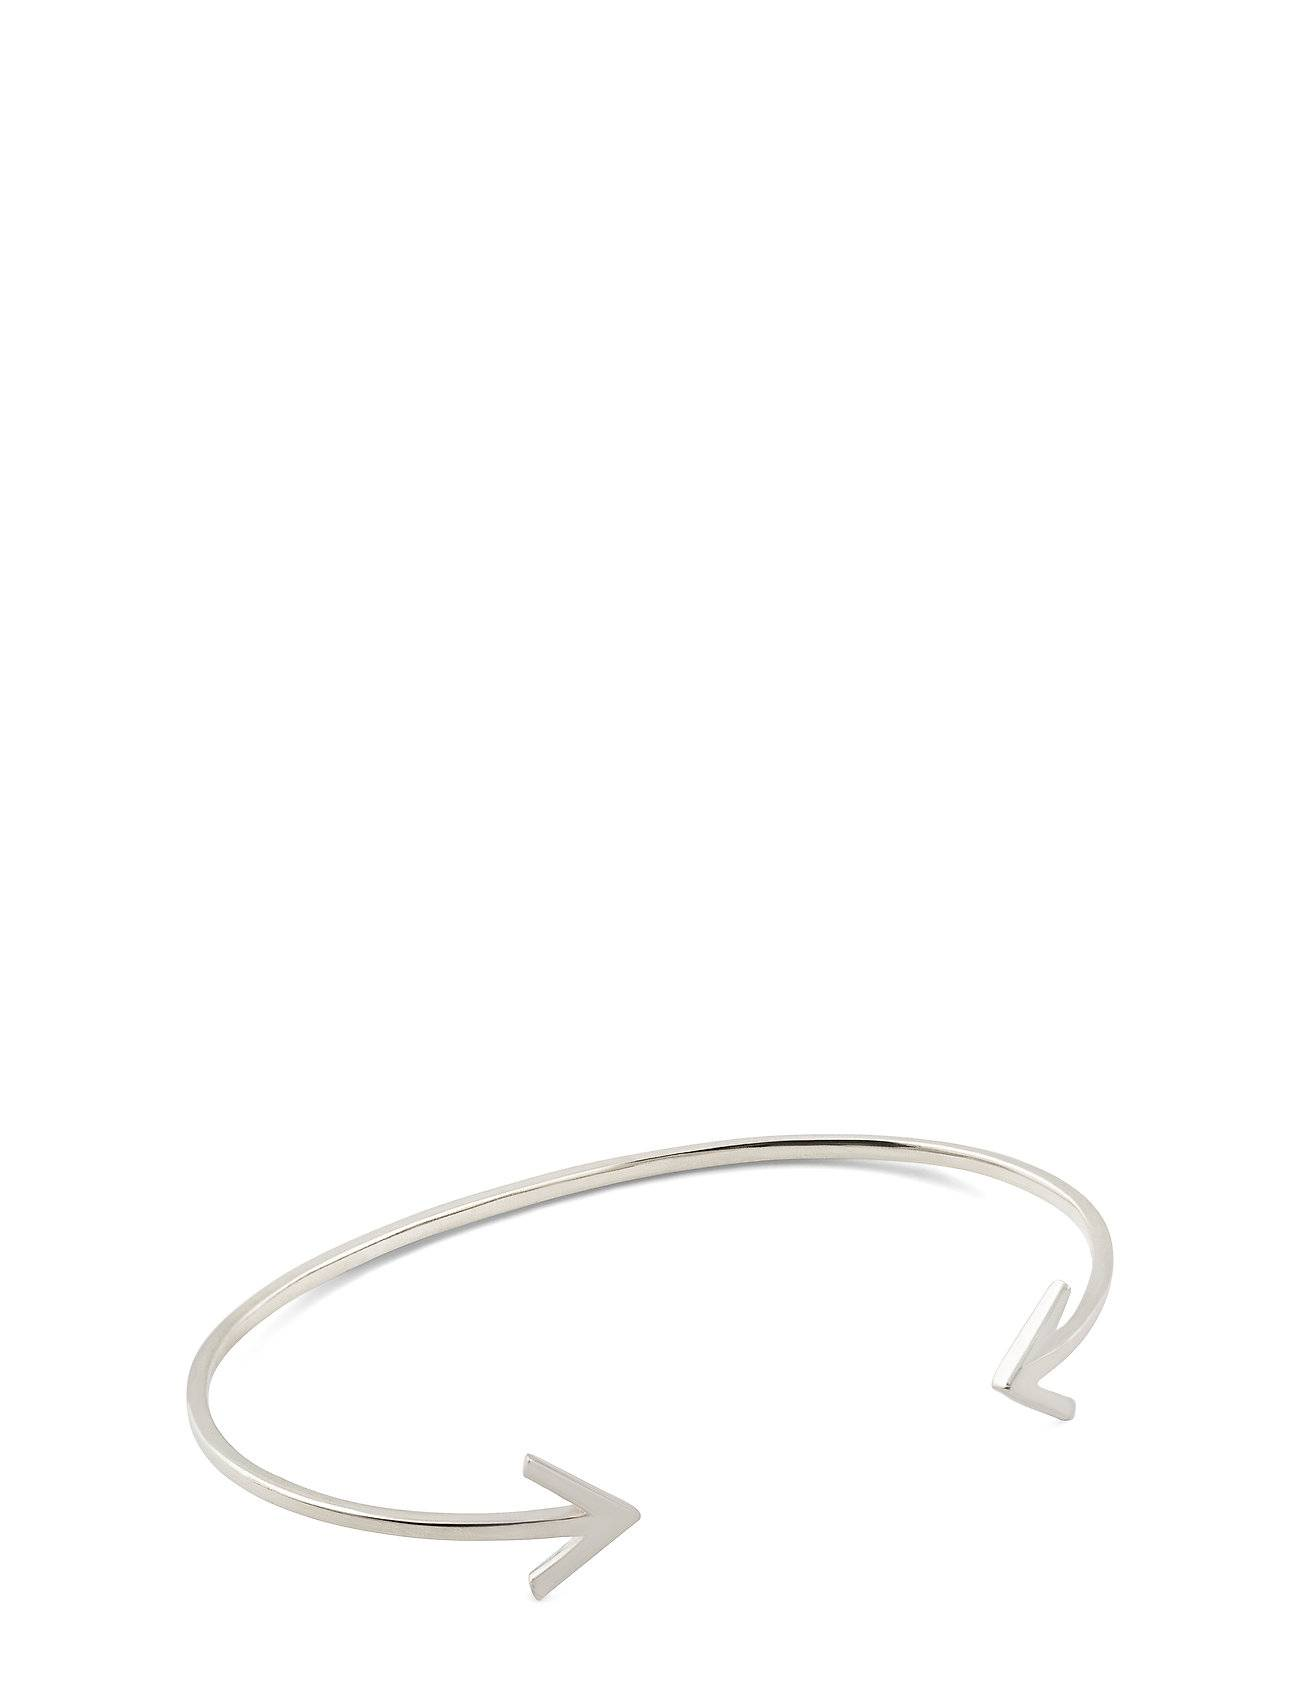 Syster P Strict Plain Bangle